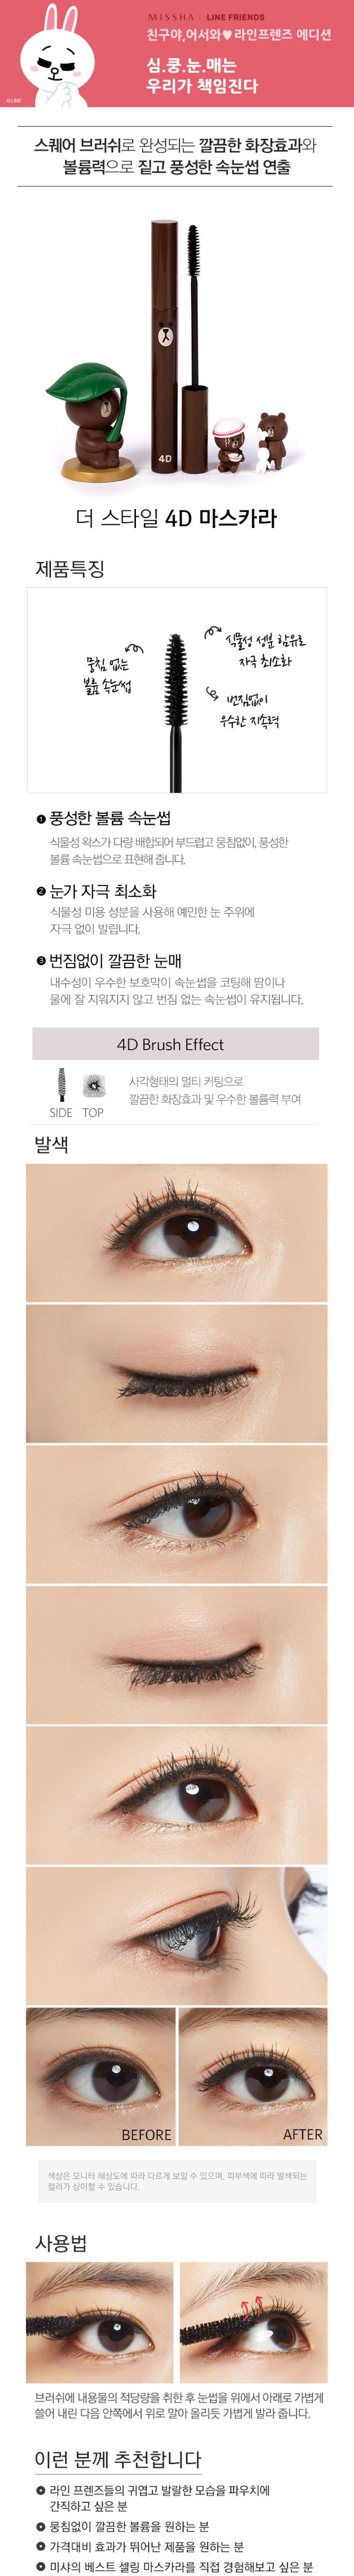 Missha x Line Friends - 4D Mascara